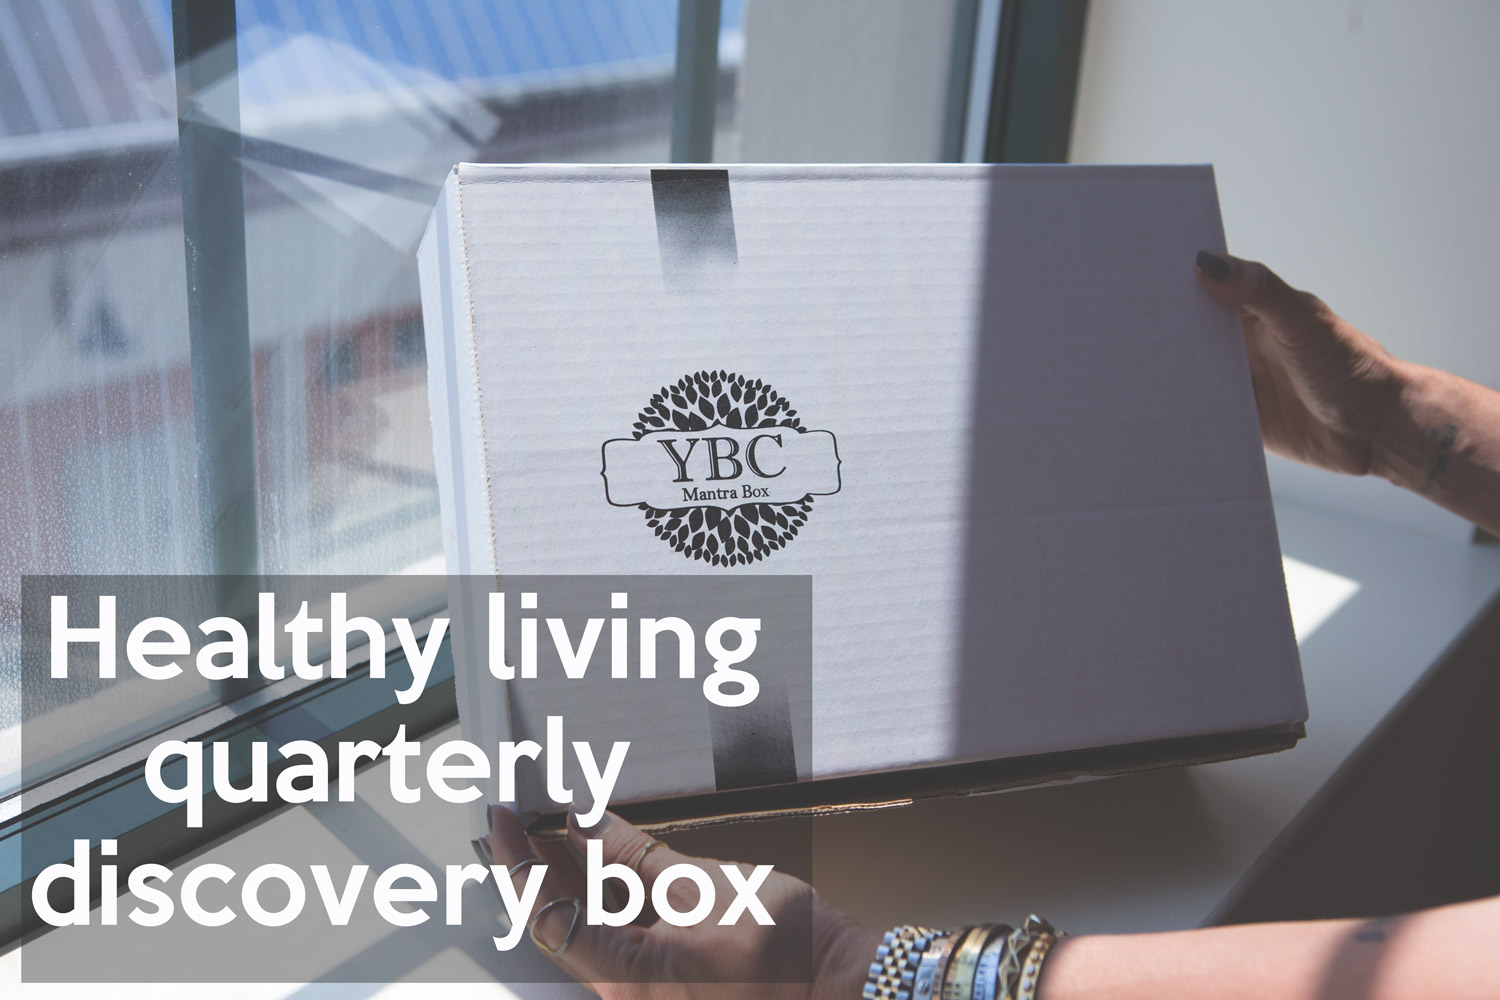 Pin now and order the YBC Mantra Box ™